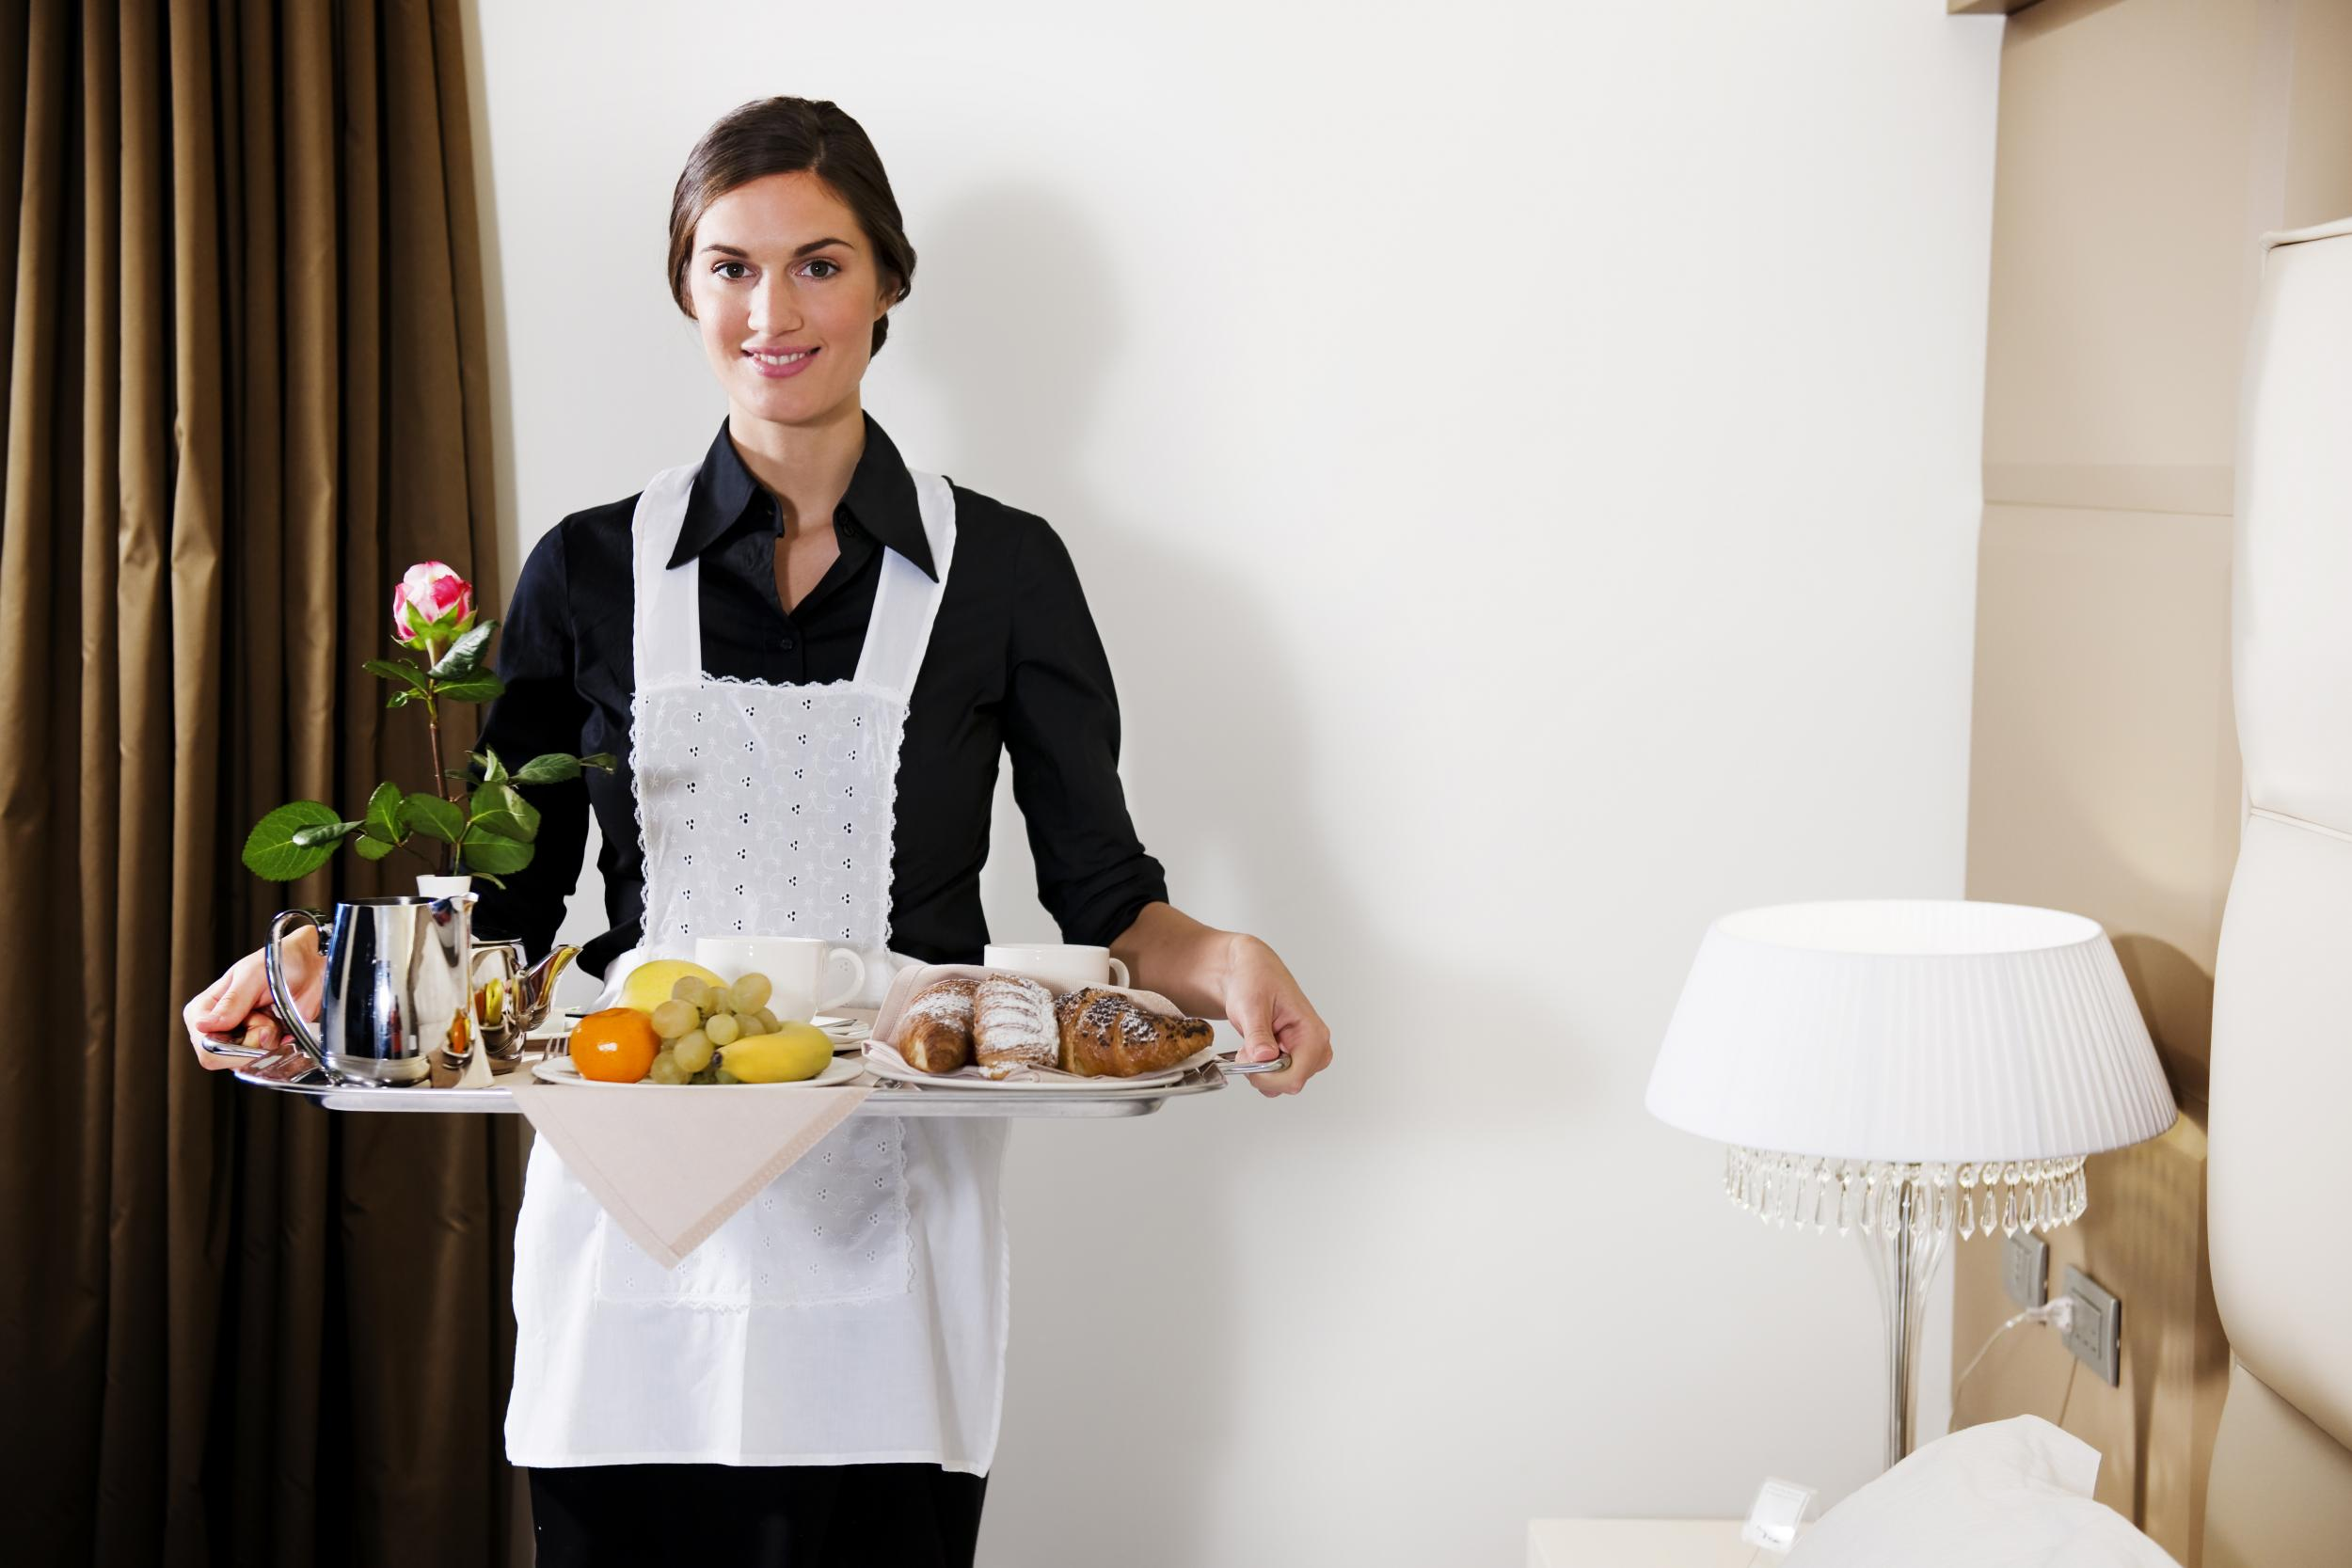 What Are The Duties To Be Expected From Room Service Part 1